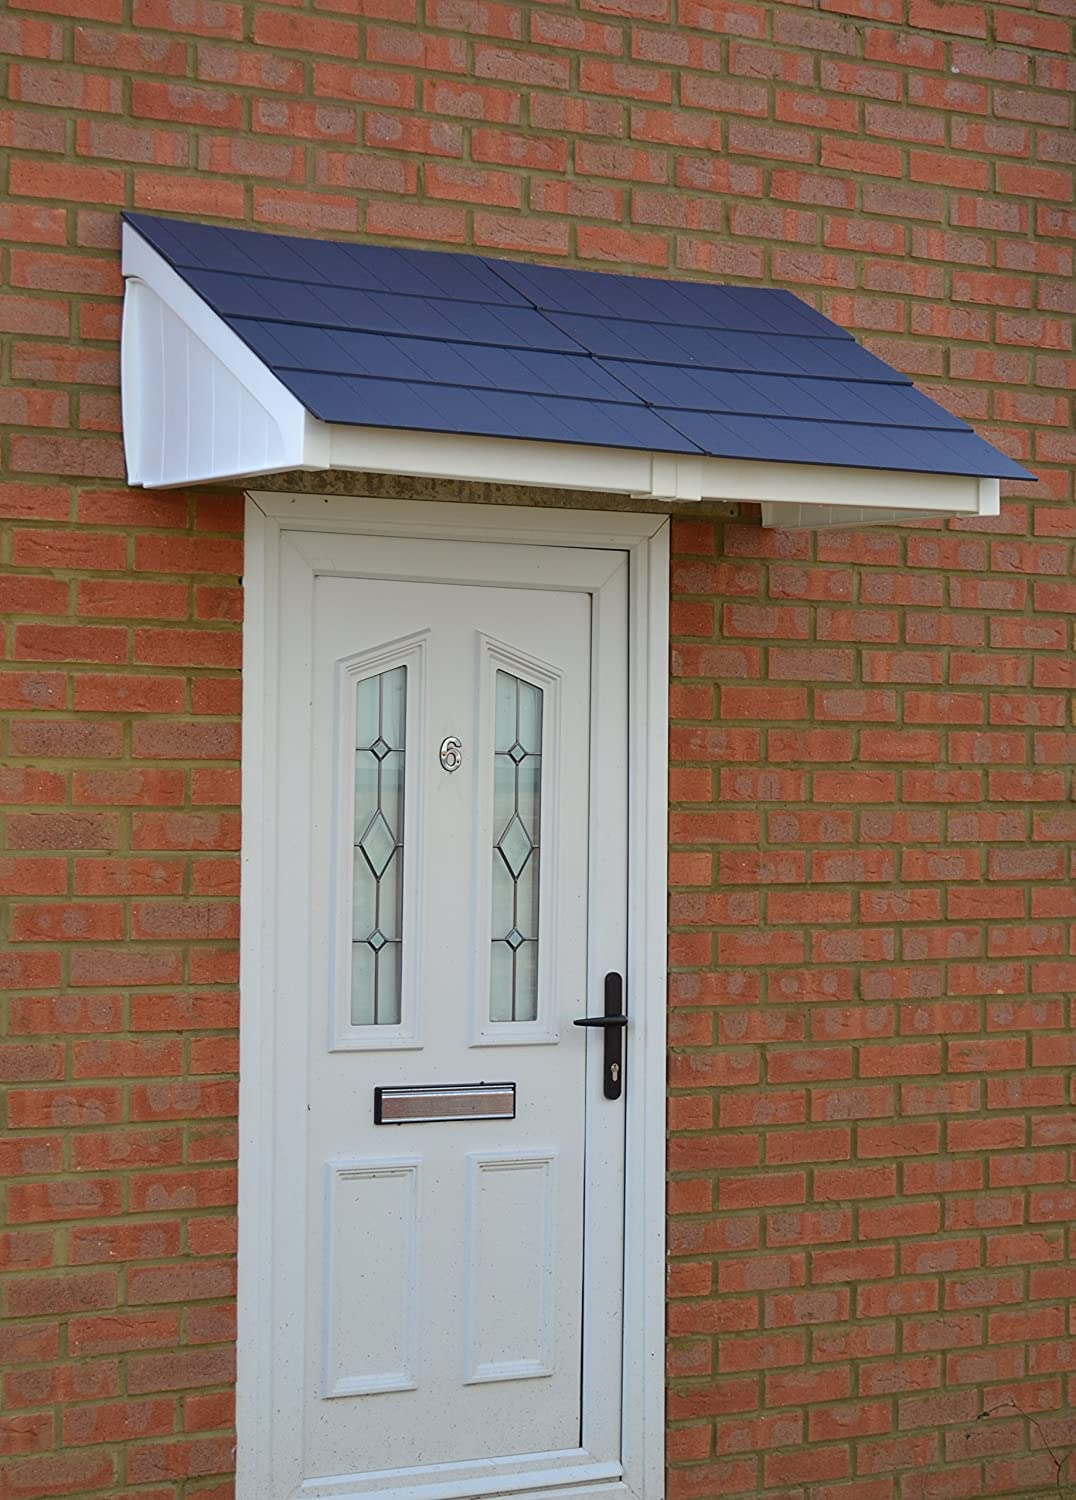 Mayfair Door Canopy and Storm Porch (White Frame Grey Tiles) Kovertek Limited